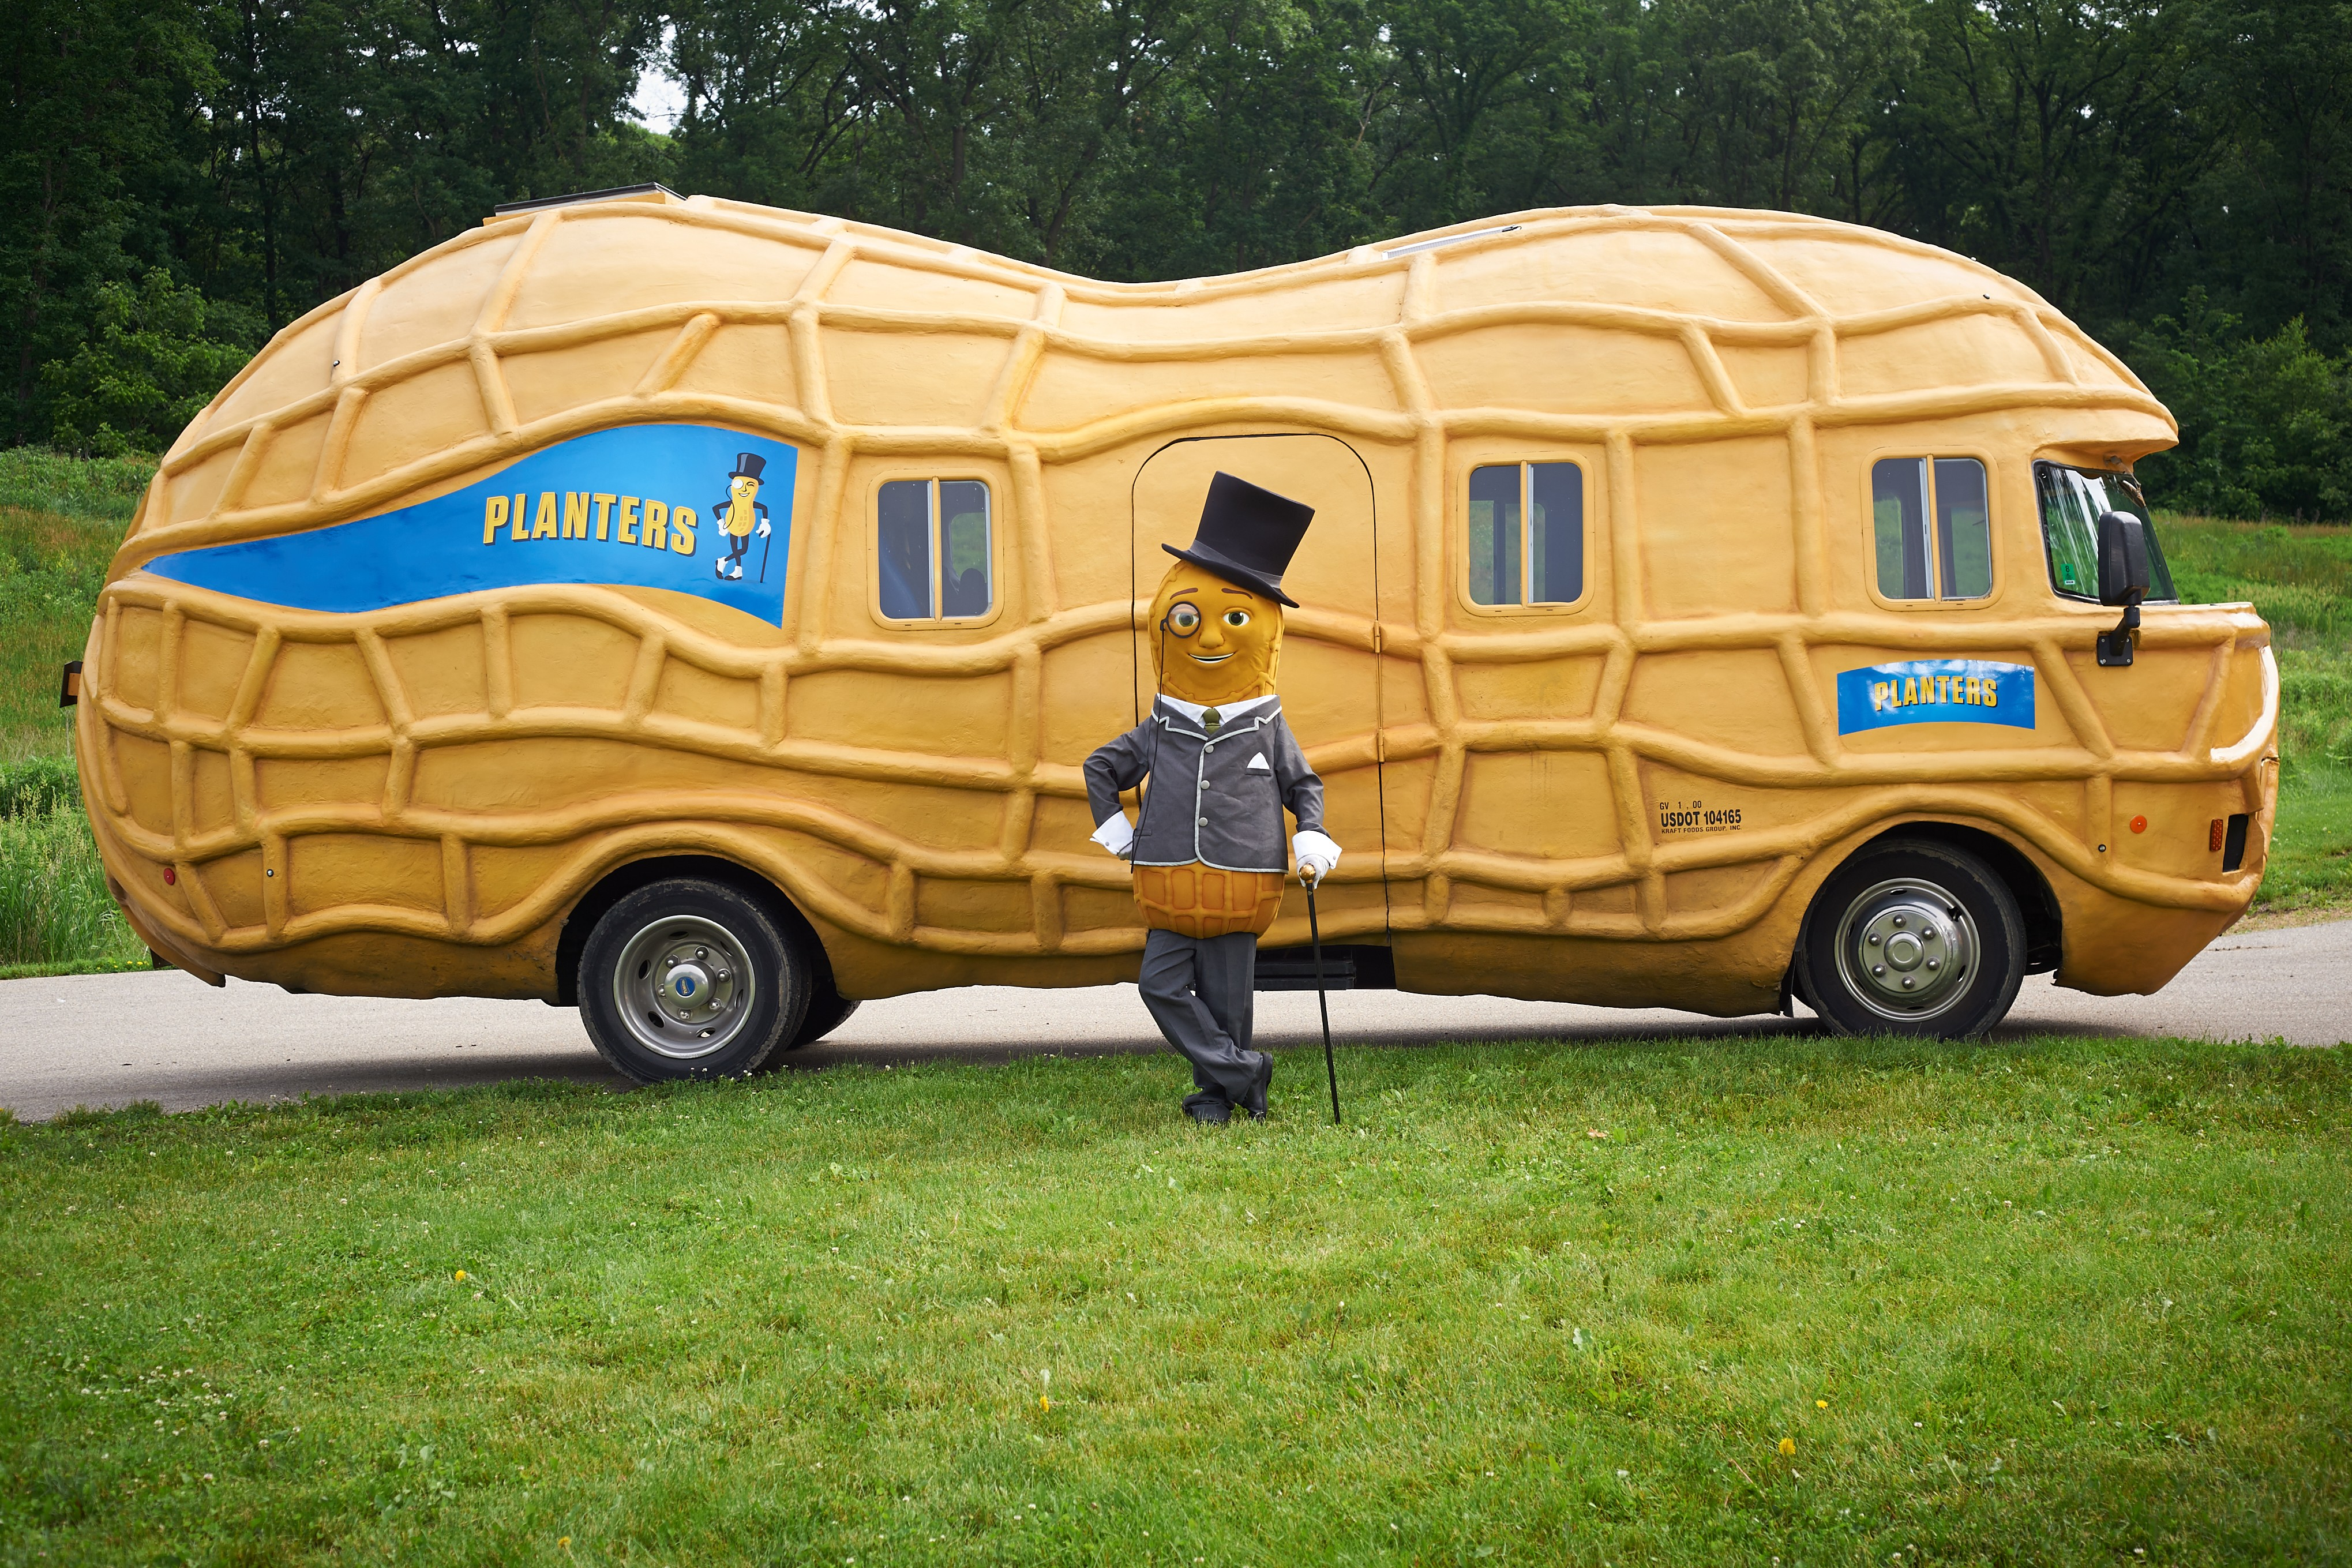 2142869dc Hold On to Your Nuts! The Planters NUTmobile Comes to the Cleveland ...